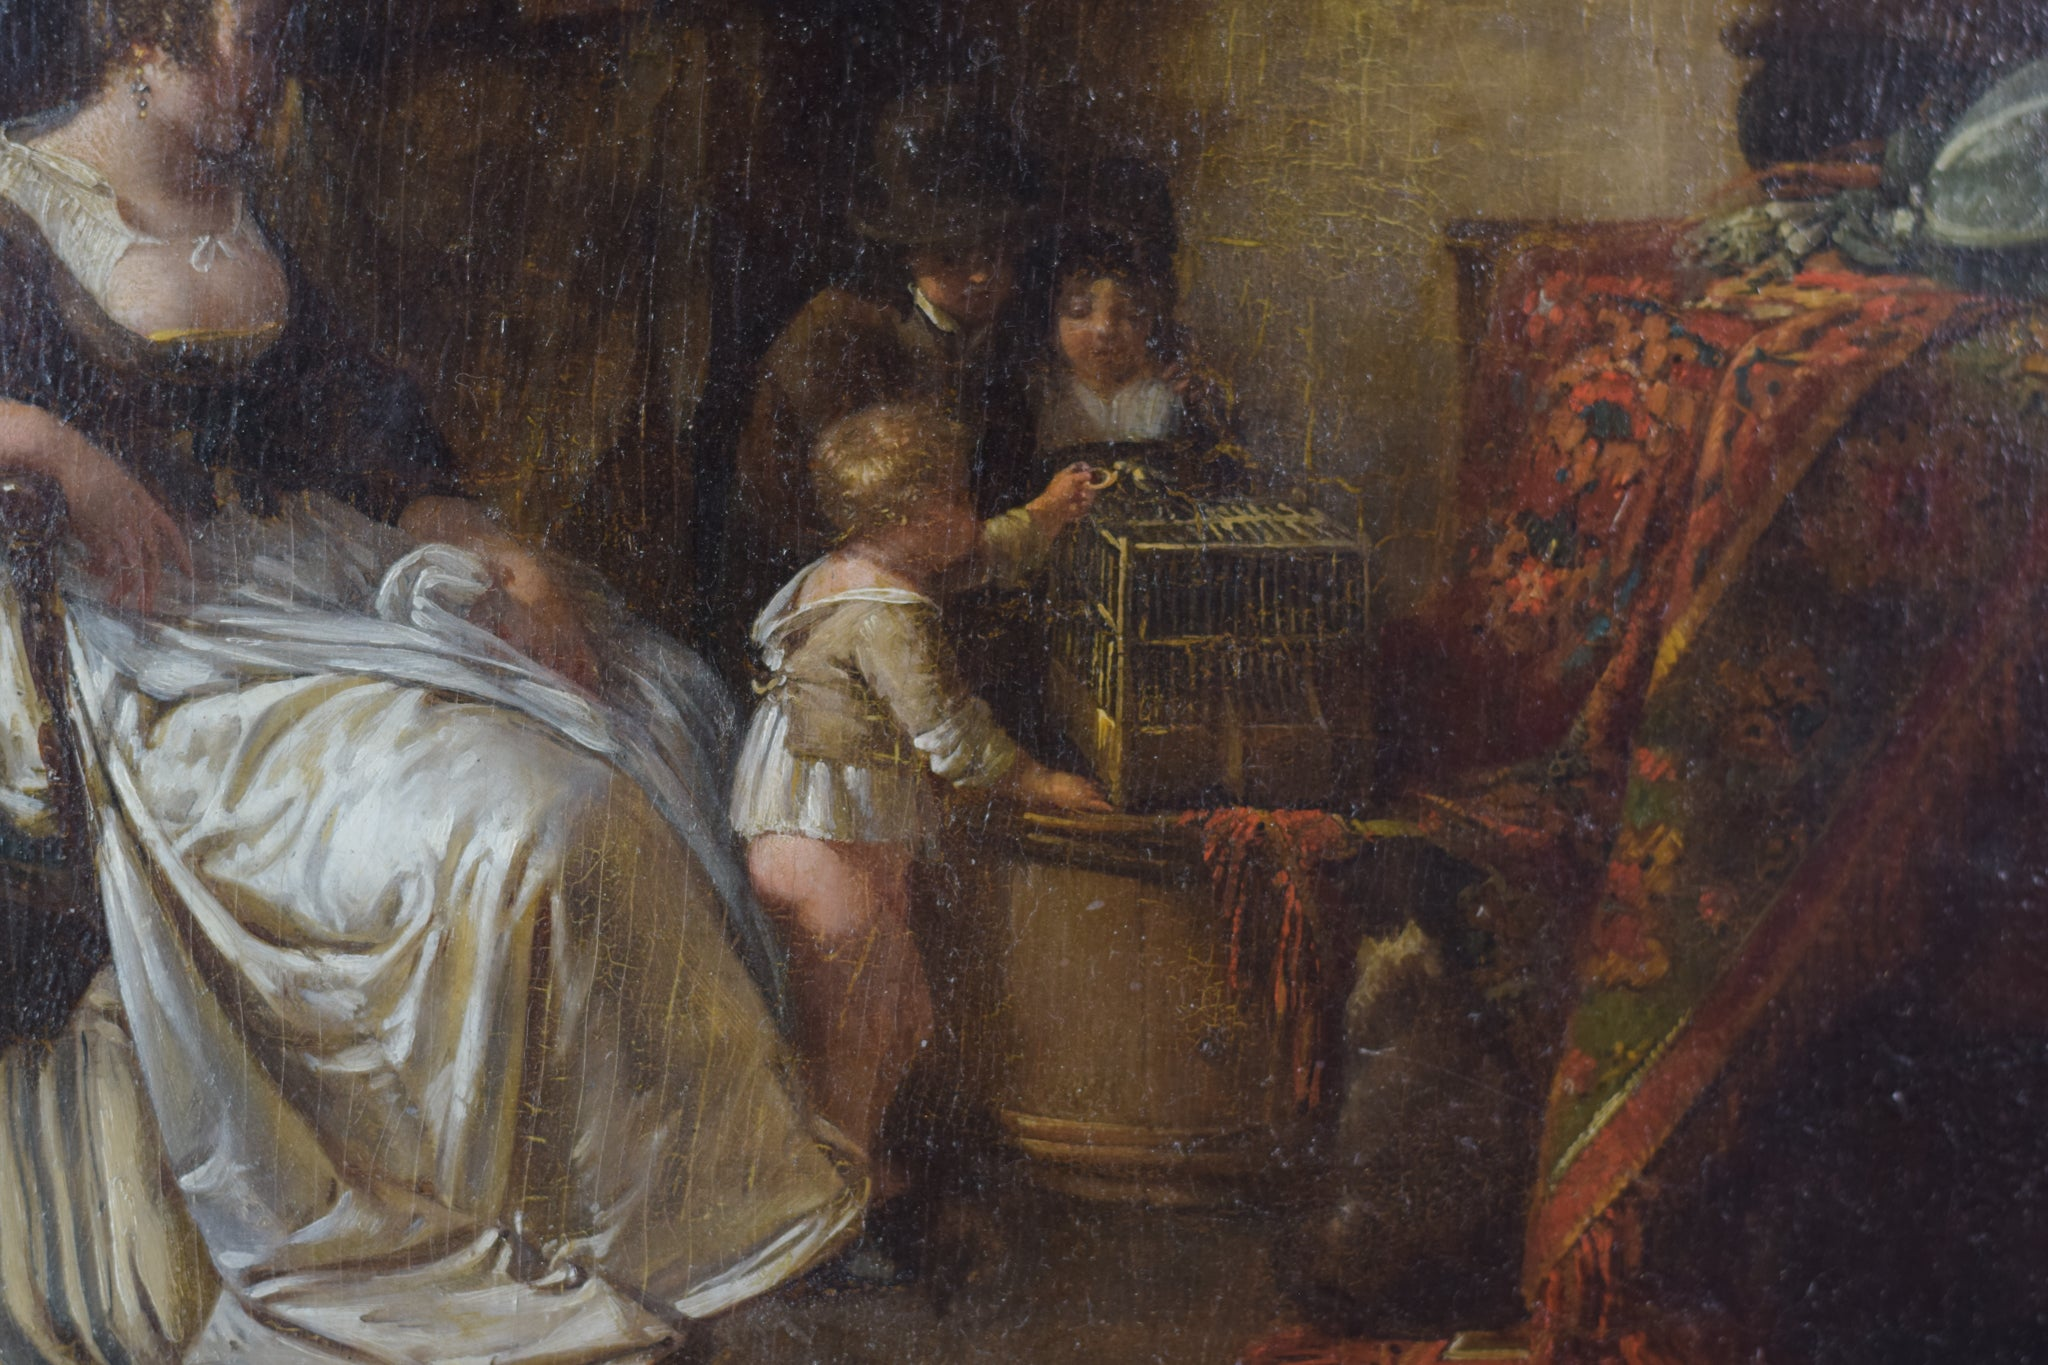 Late 18th Century Domestic scene with children feeding a bird in a cage with mother and maid_Detail